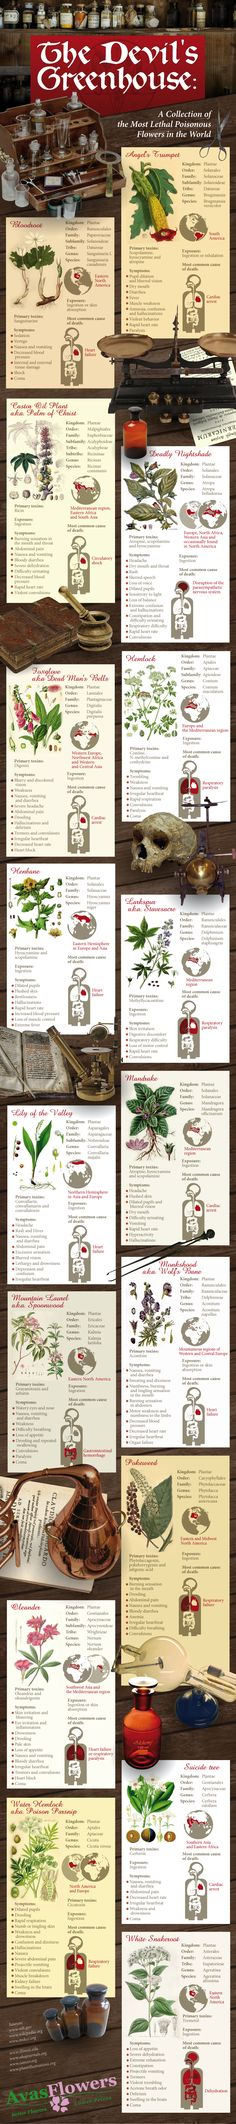 The Devil's Greenhouse #infographic #Flowers #Plants #Health #Travel